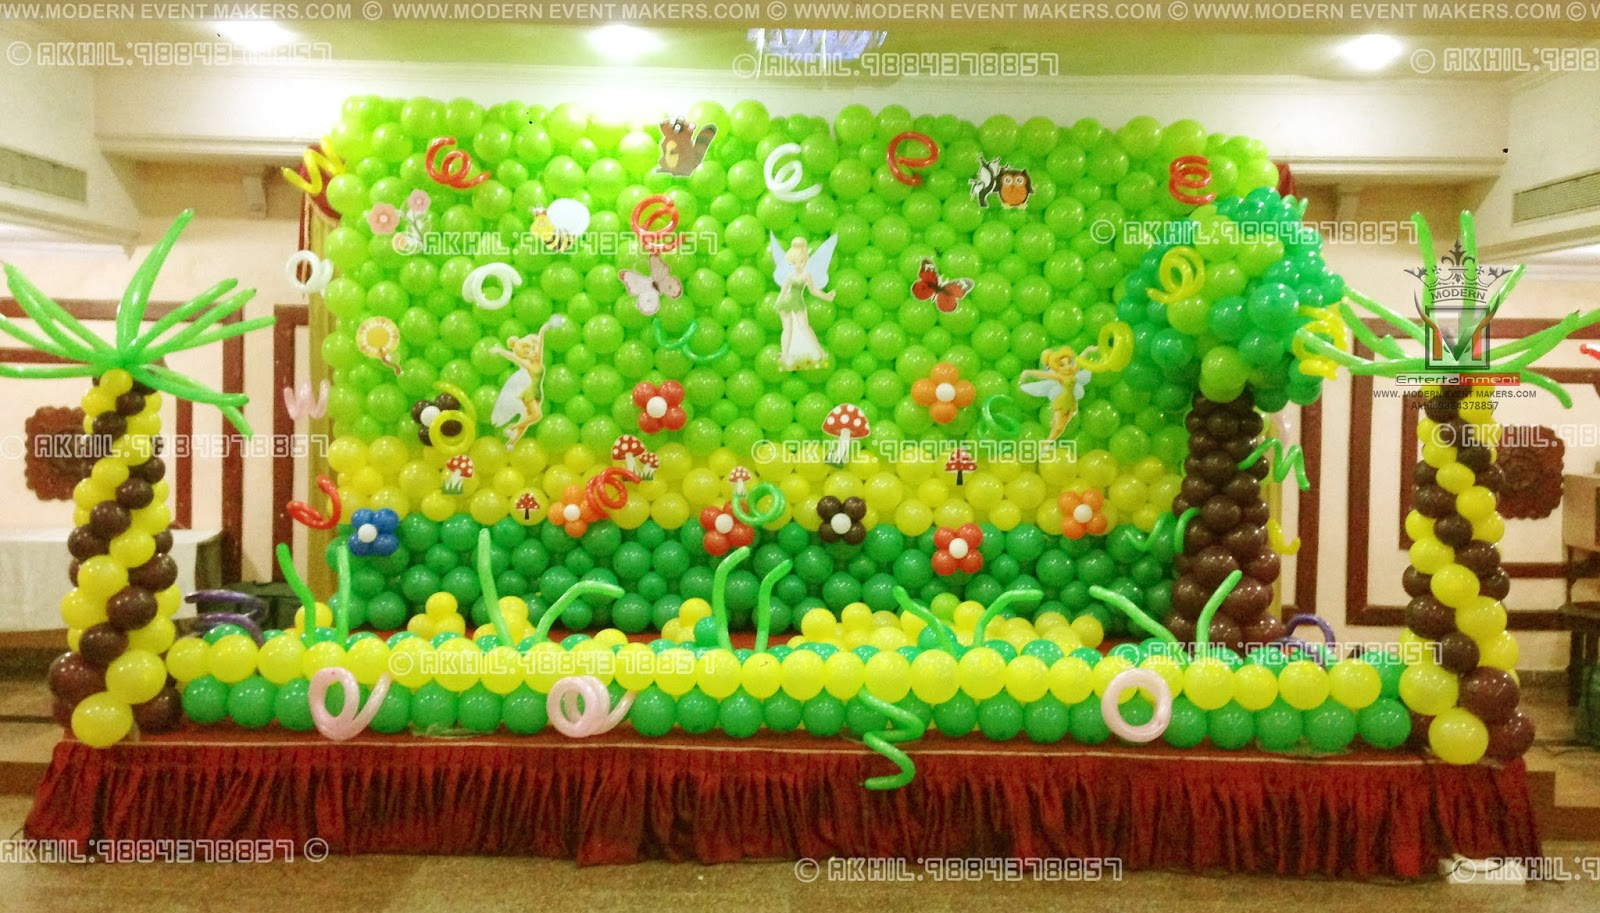 Event management company balloon decoration modern for Balloon decoration for parties